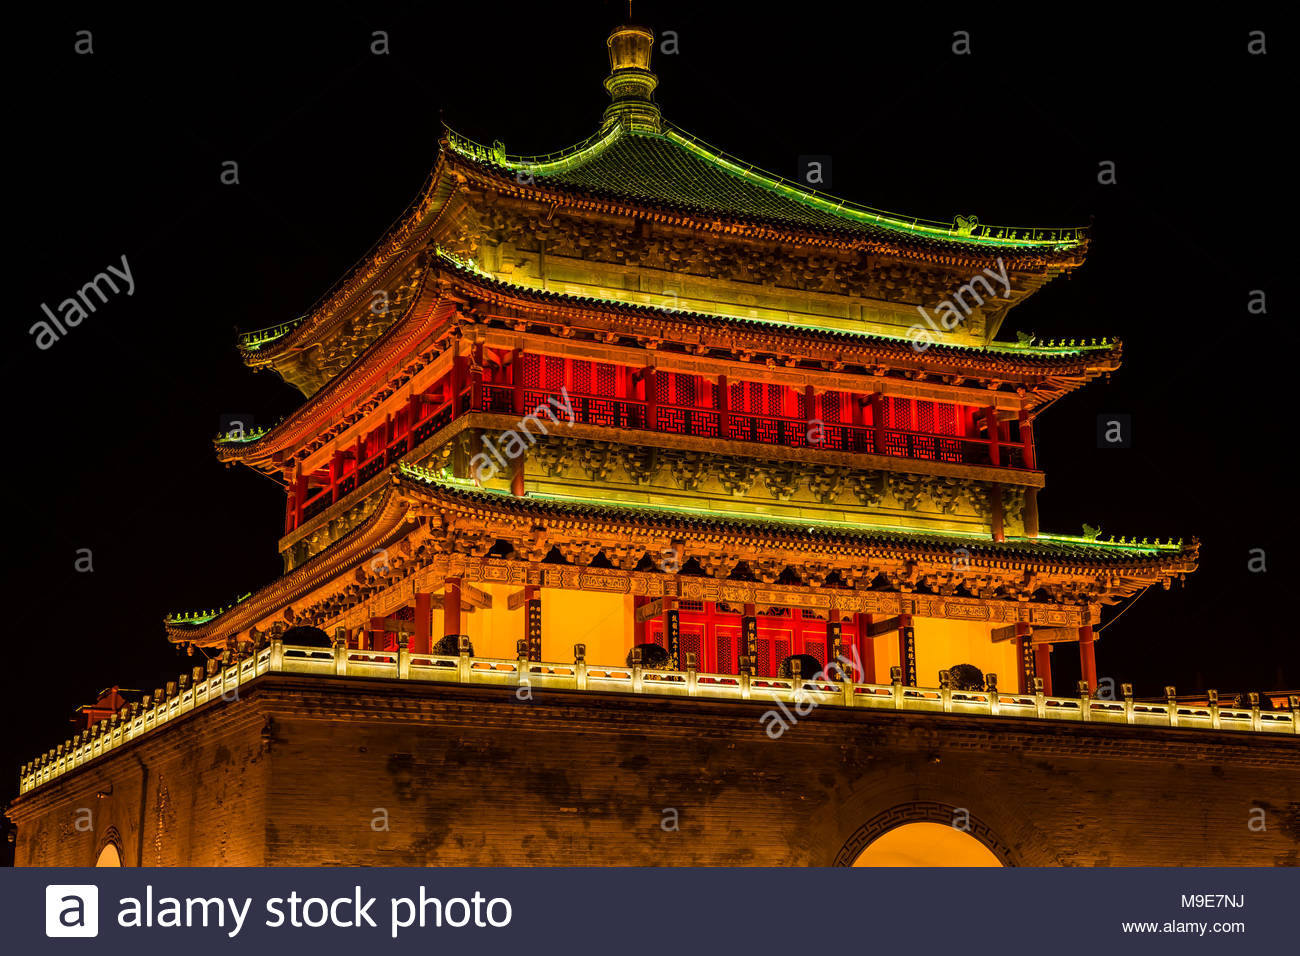 The Bell Tower, built in 1384 during the early Ming Dynasty, is a symbol of the city of Xi'an and one of the grandest of its kind in China. The Bell T - Stock Image